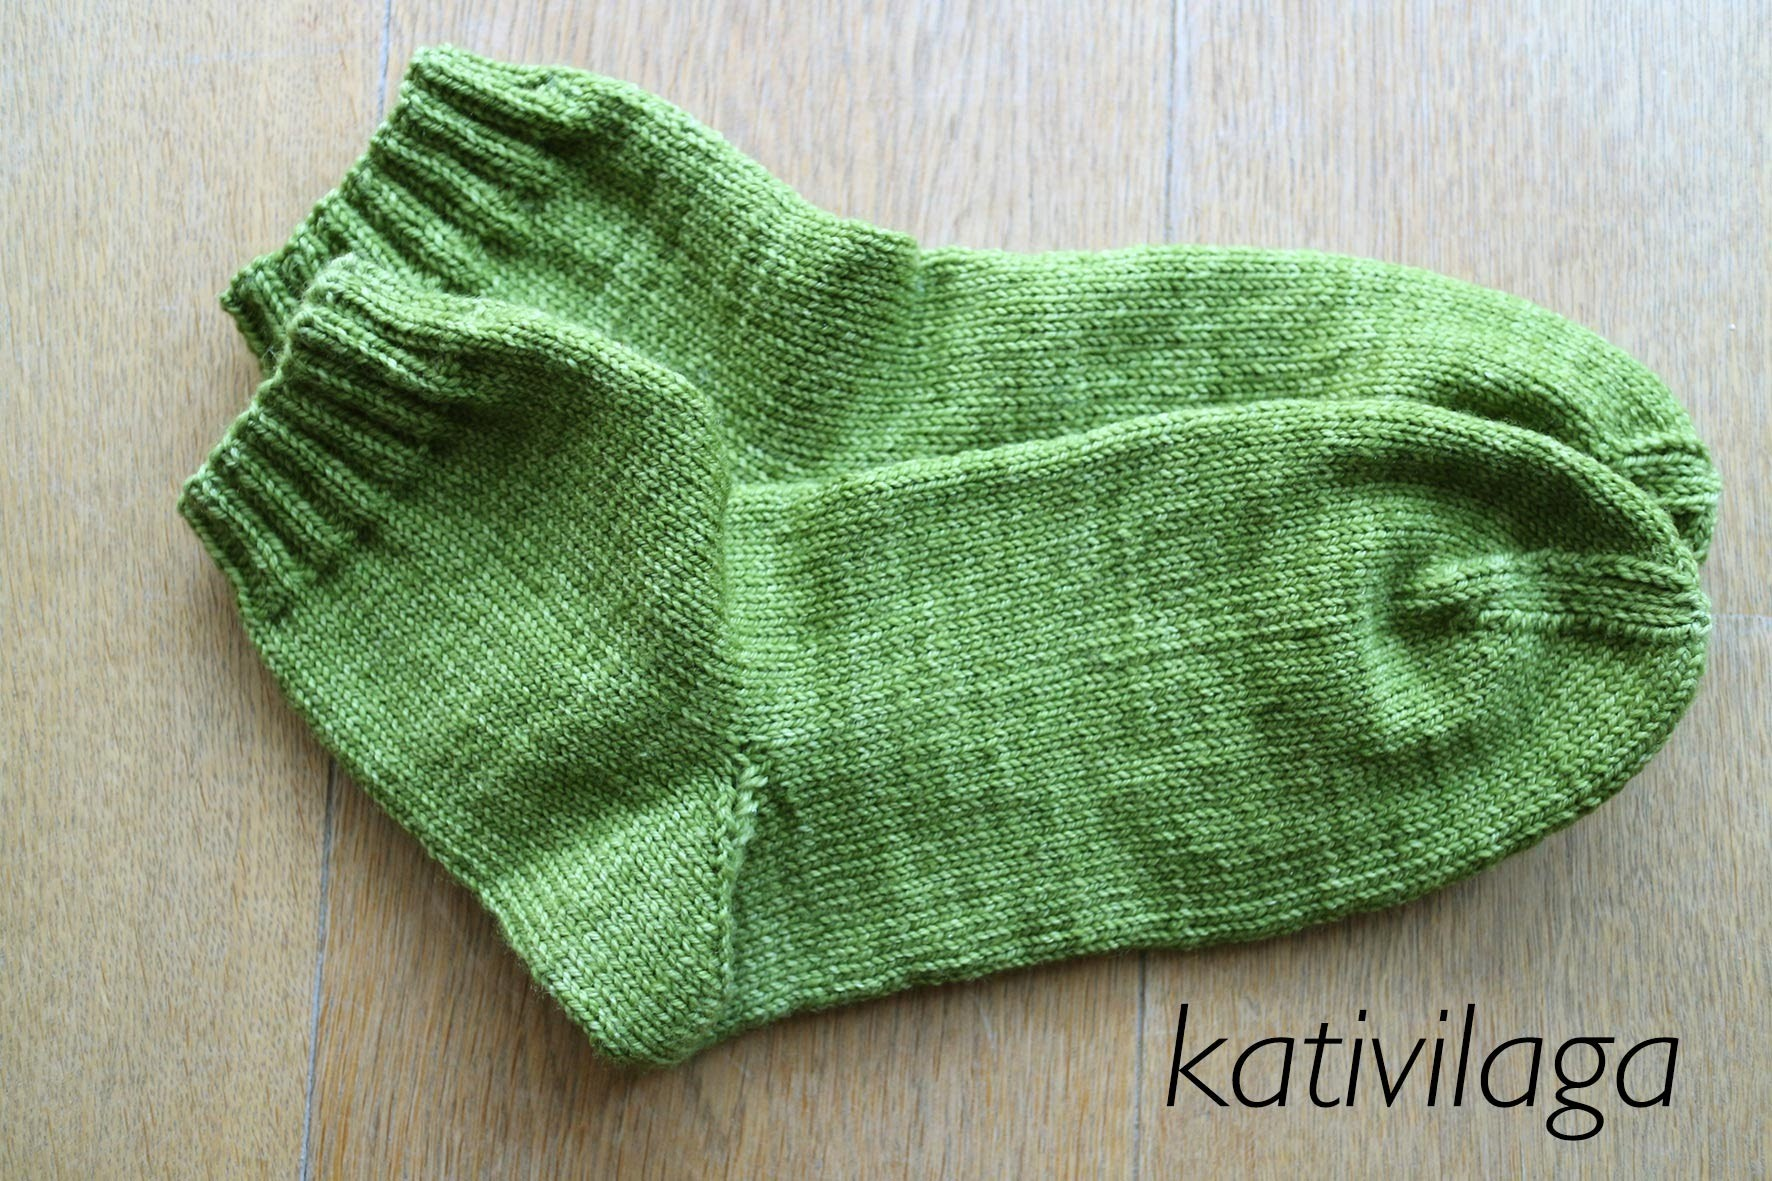 How to knit socks - Comment tricoter des chaussettes - Cómo tejer calcetines